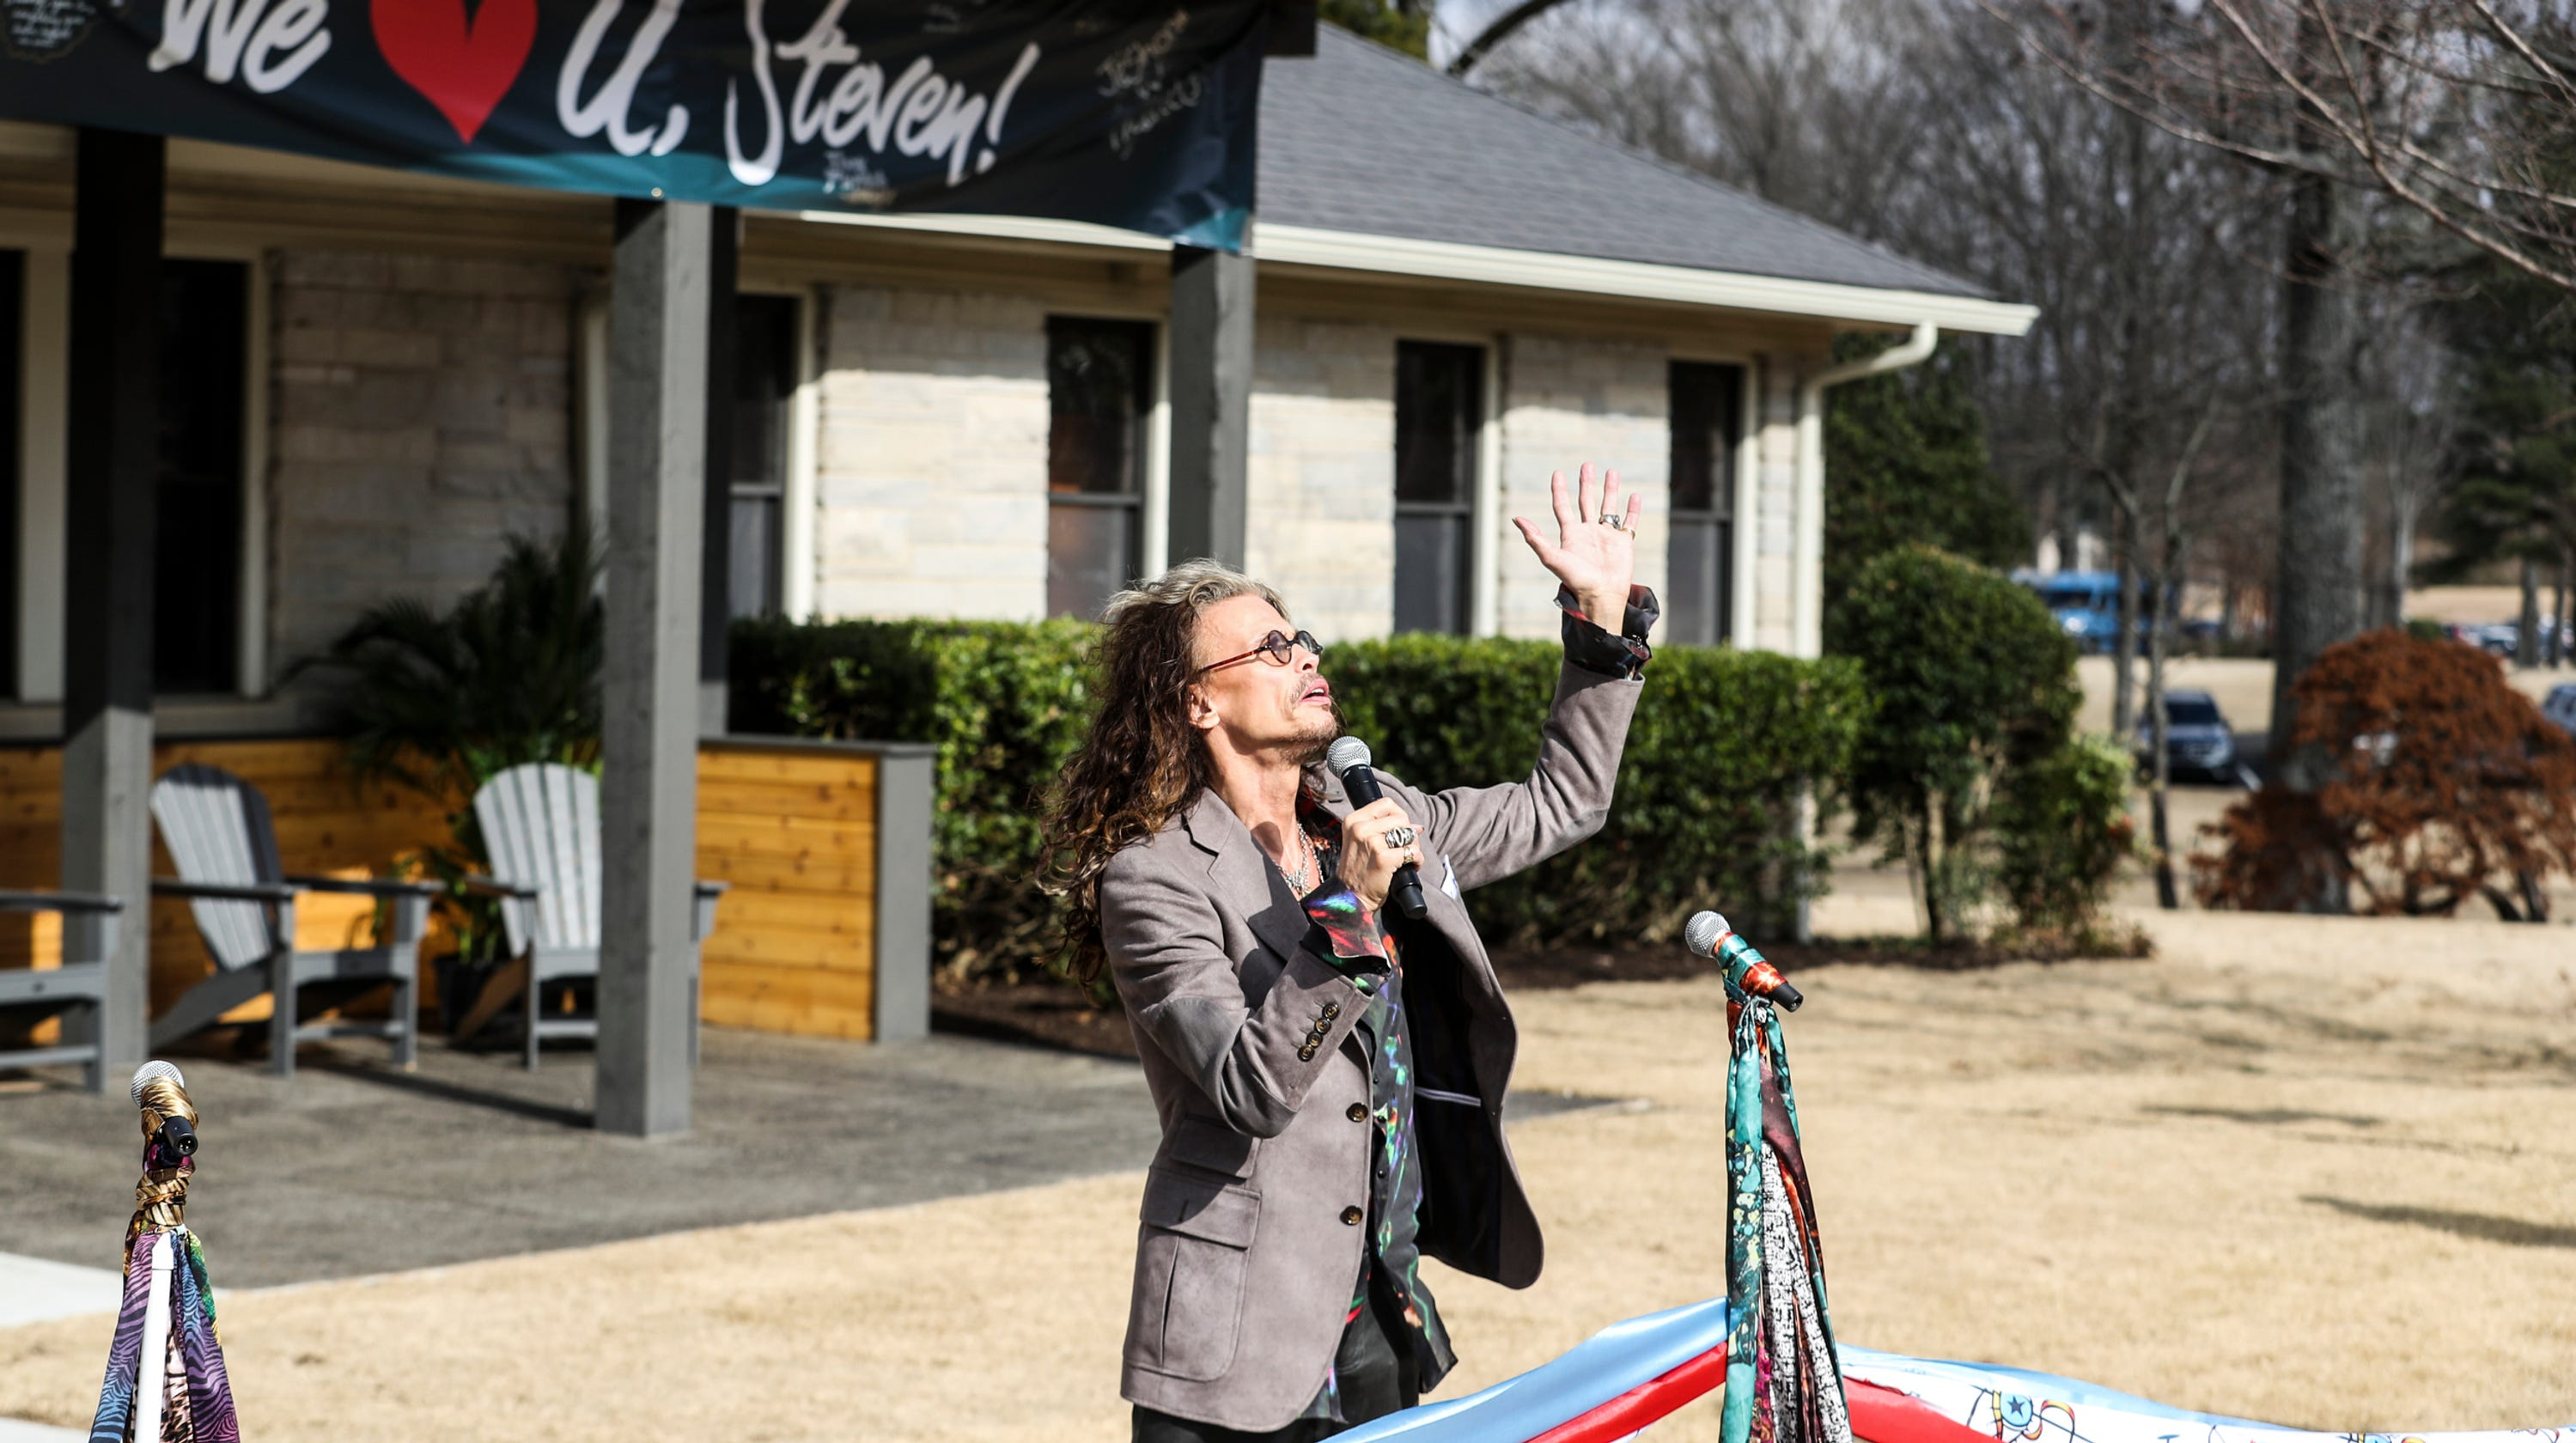 Steven Tyler at Janie's Home ceremony